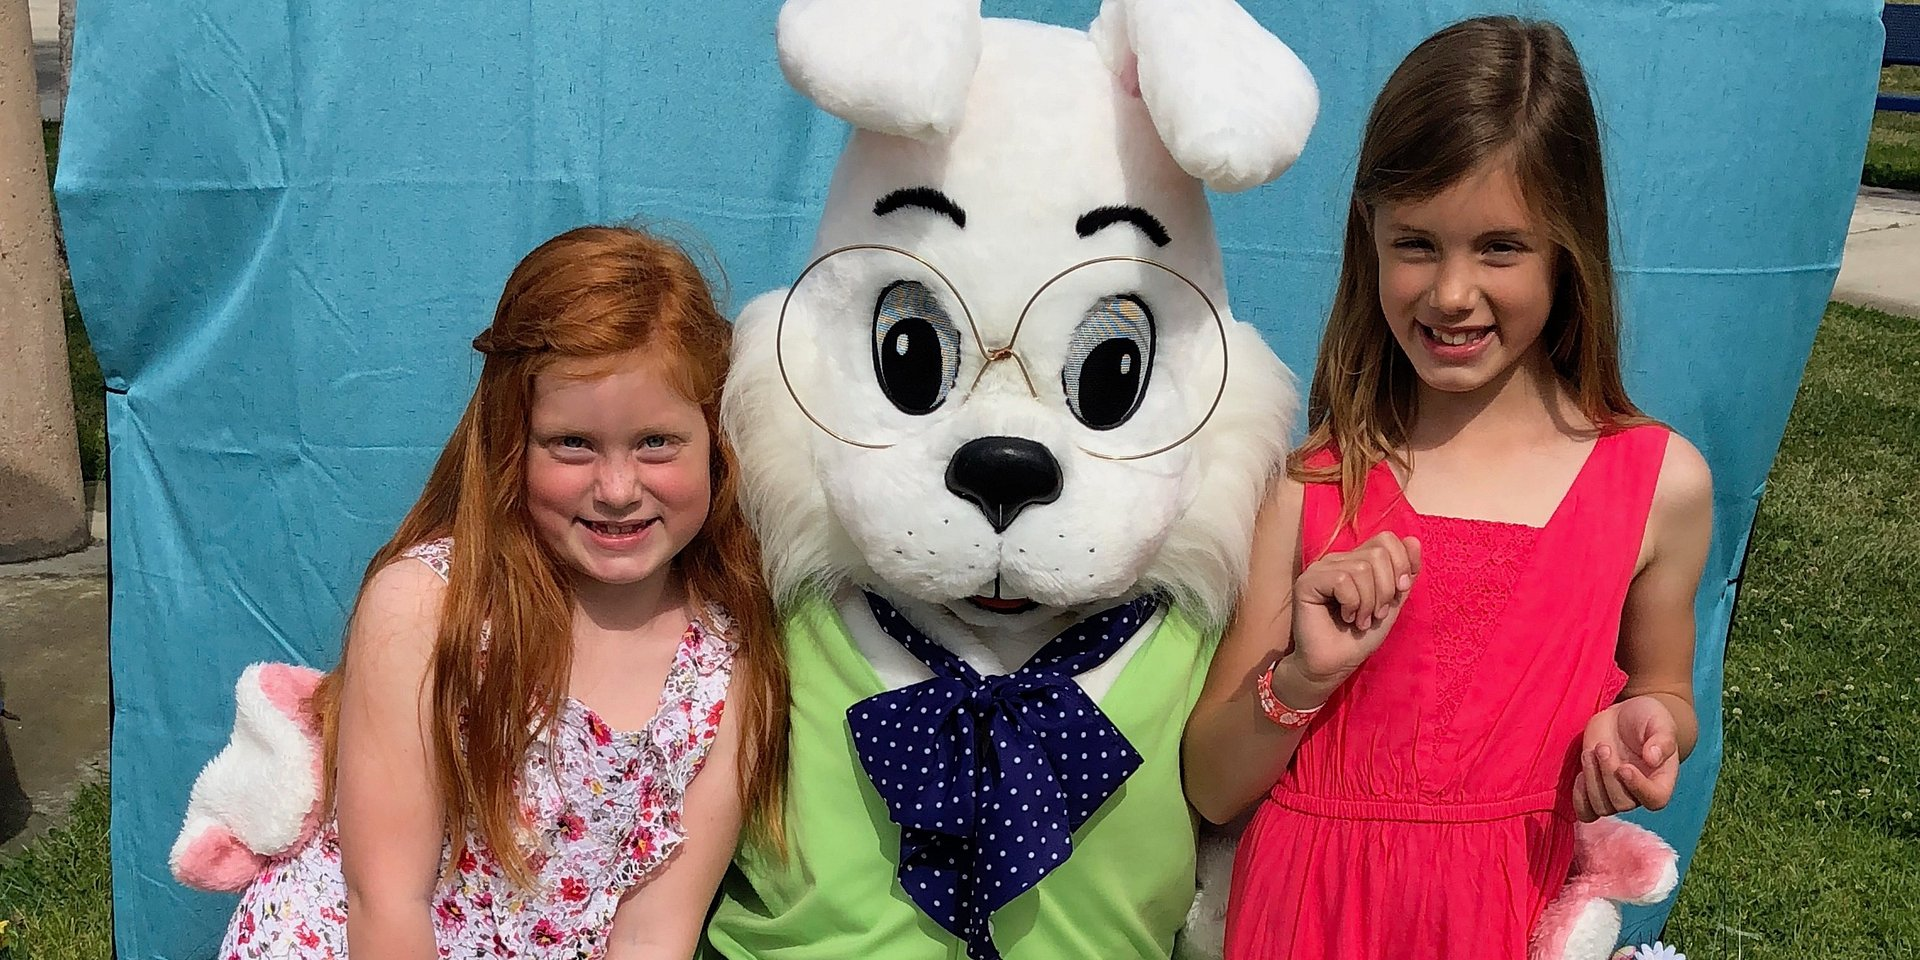 Coldwell Banker's Anthony Kelly & the City of Redondo Beach Announce Easter Egg Hunt Event, April 20